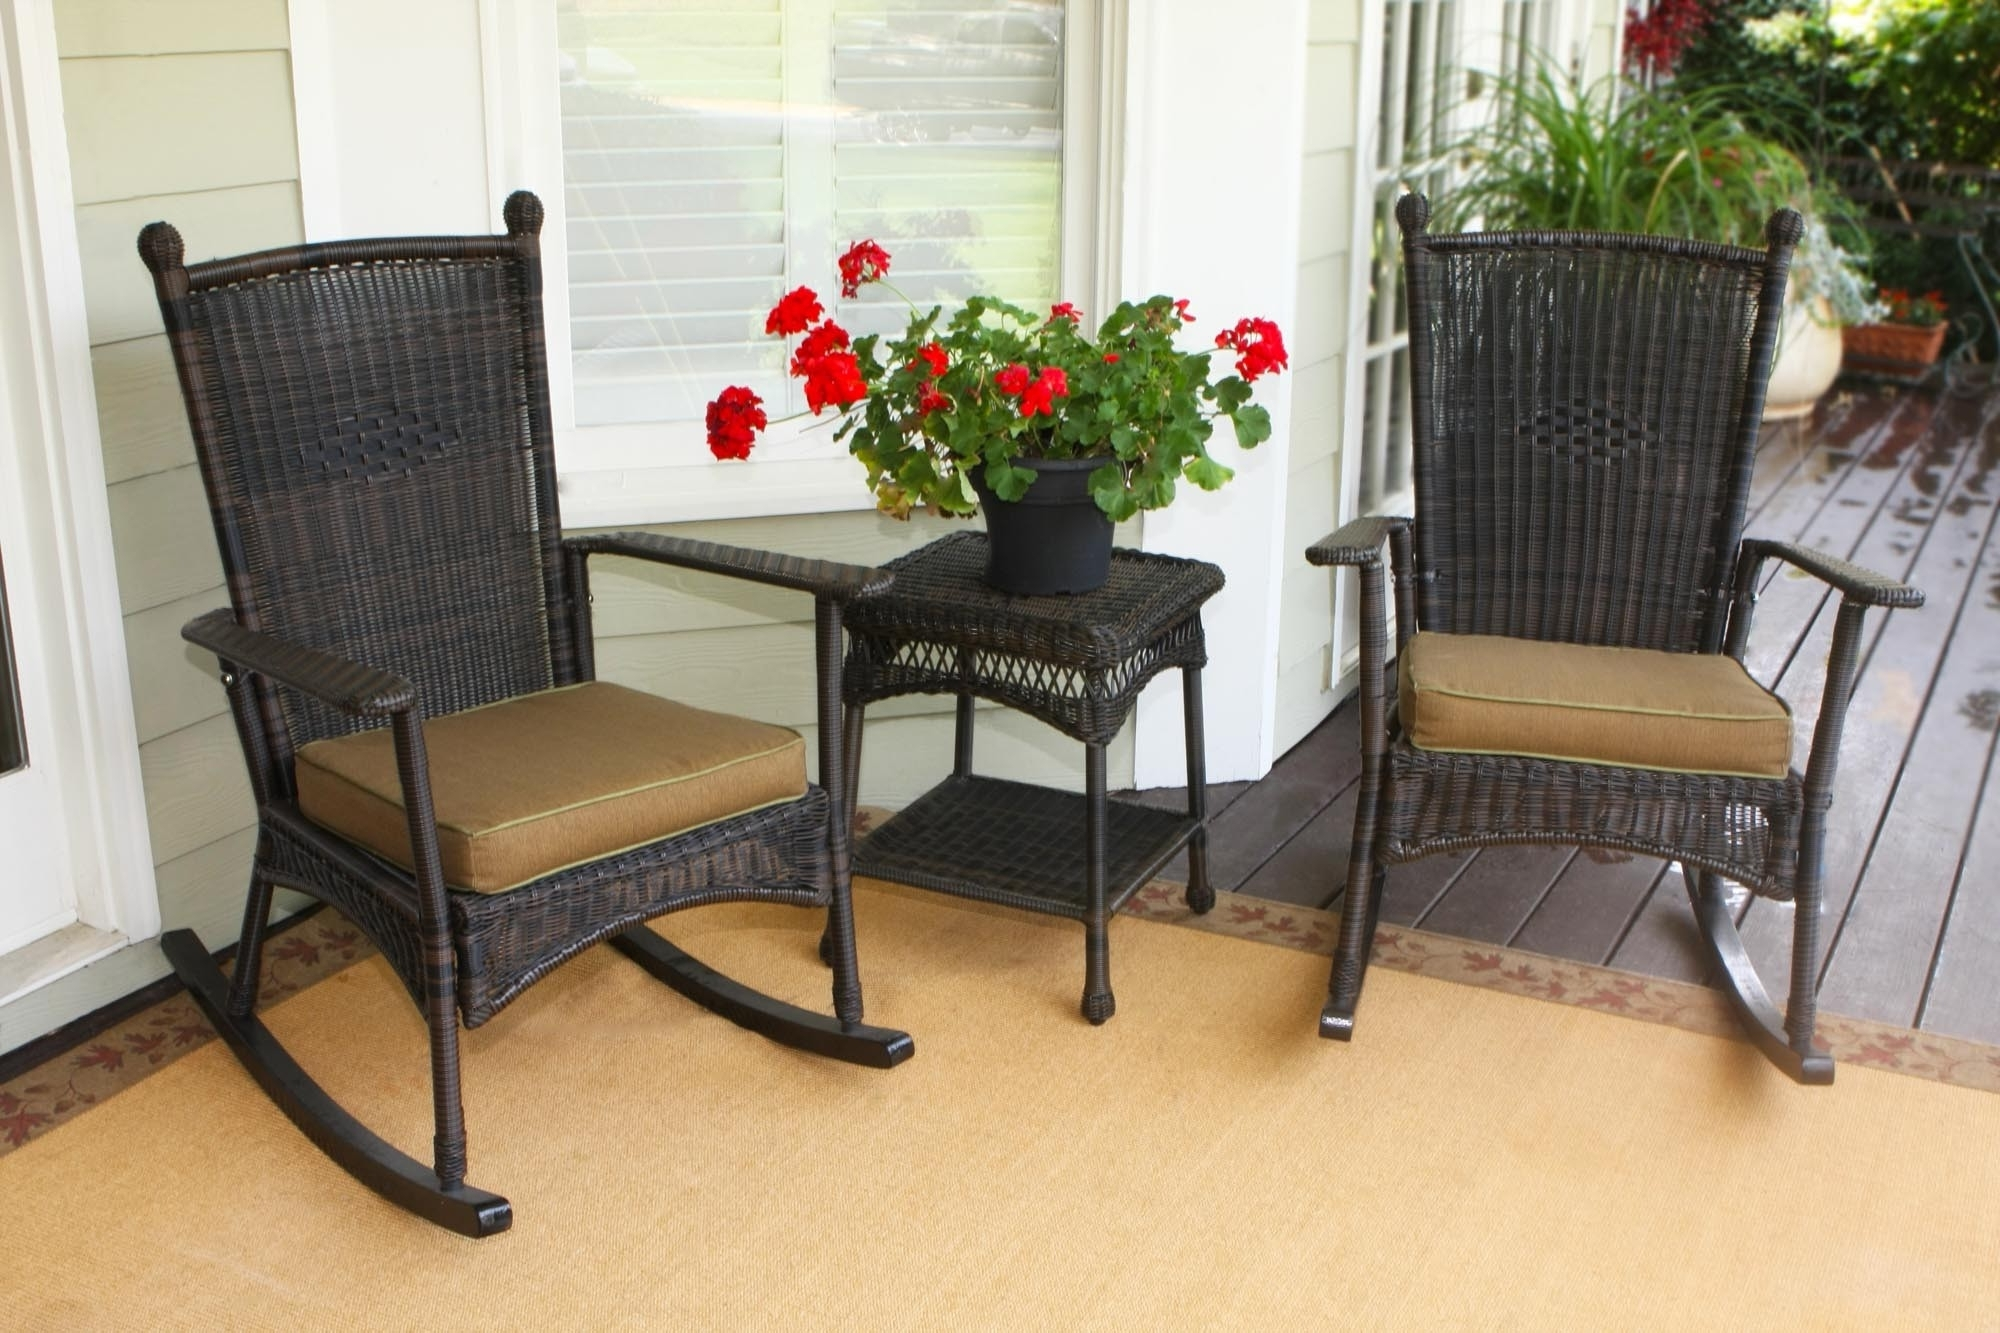 Rocking Chairs – Tortuga Outdoor Of Georgia – Alpharetta For Popular Wicker Rocking Chairs For Outdoors (View 15 of 20)